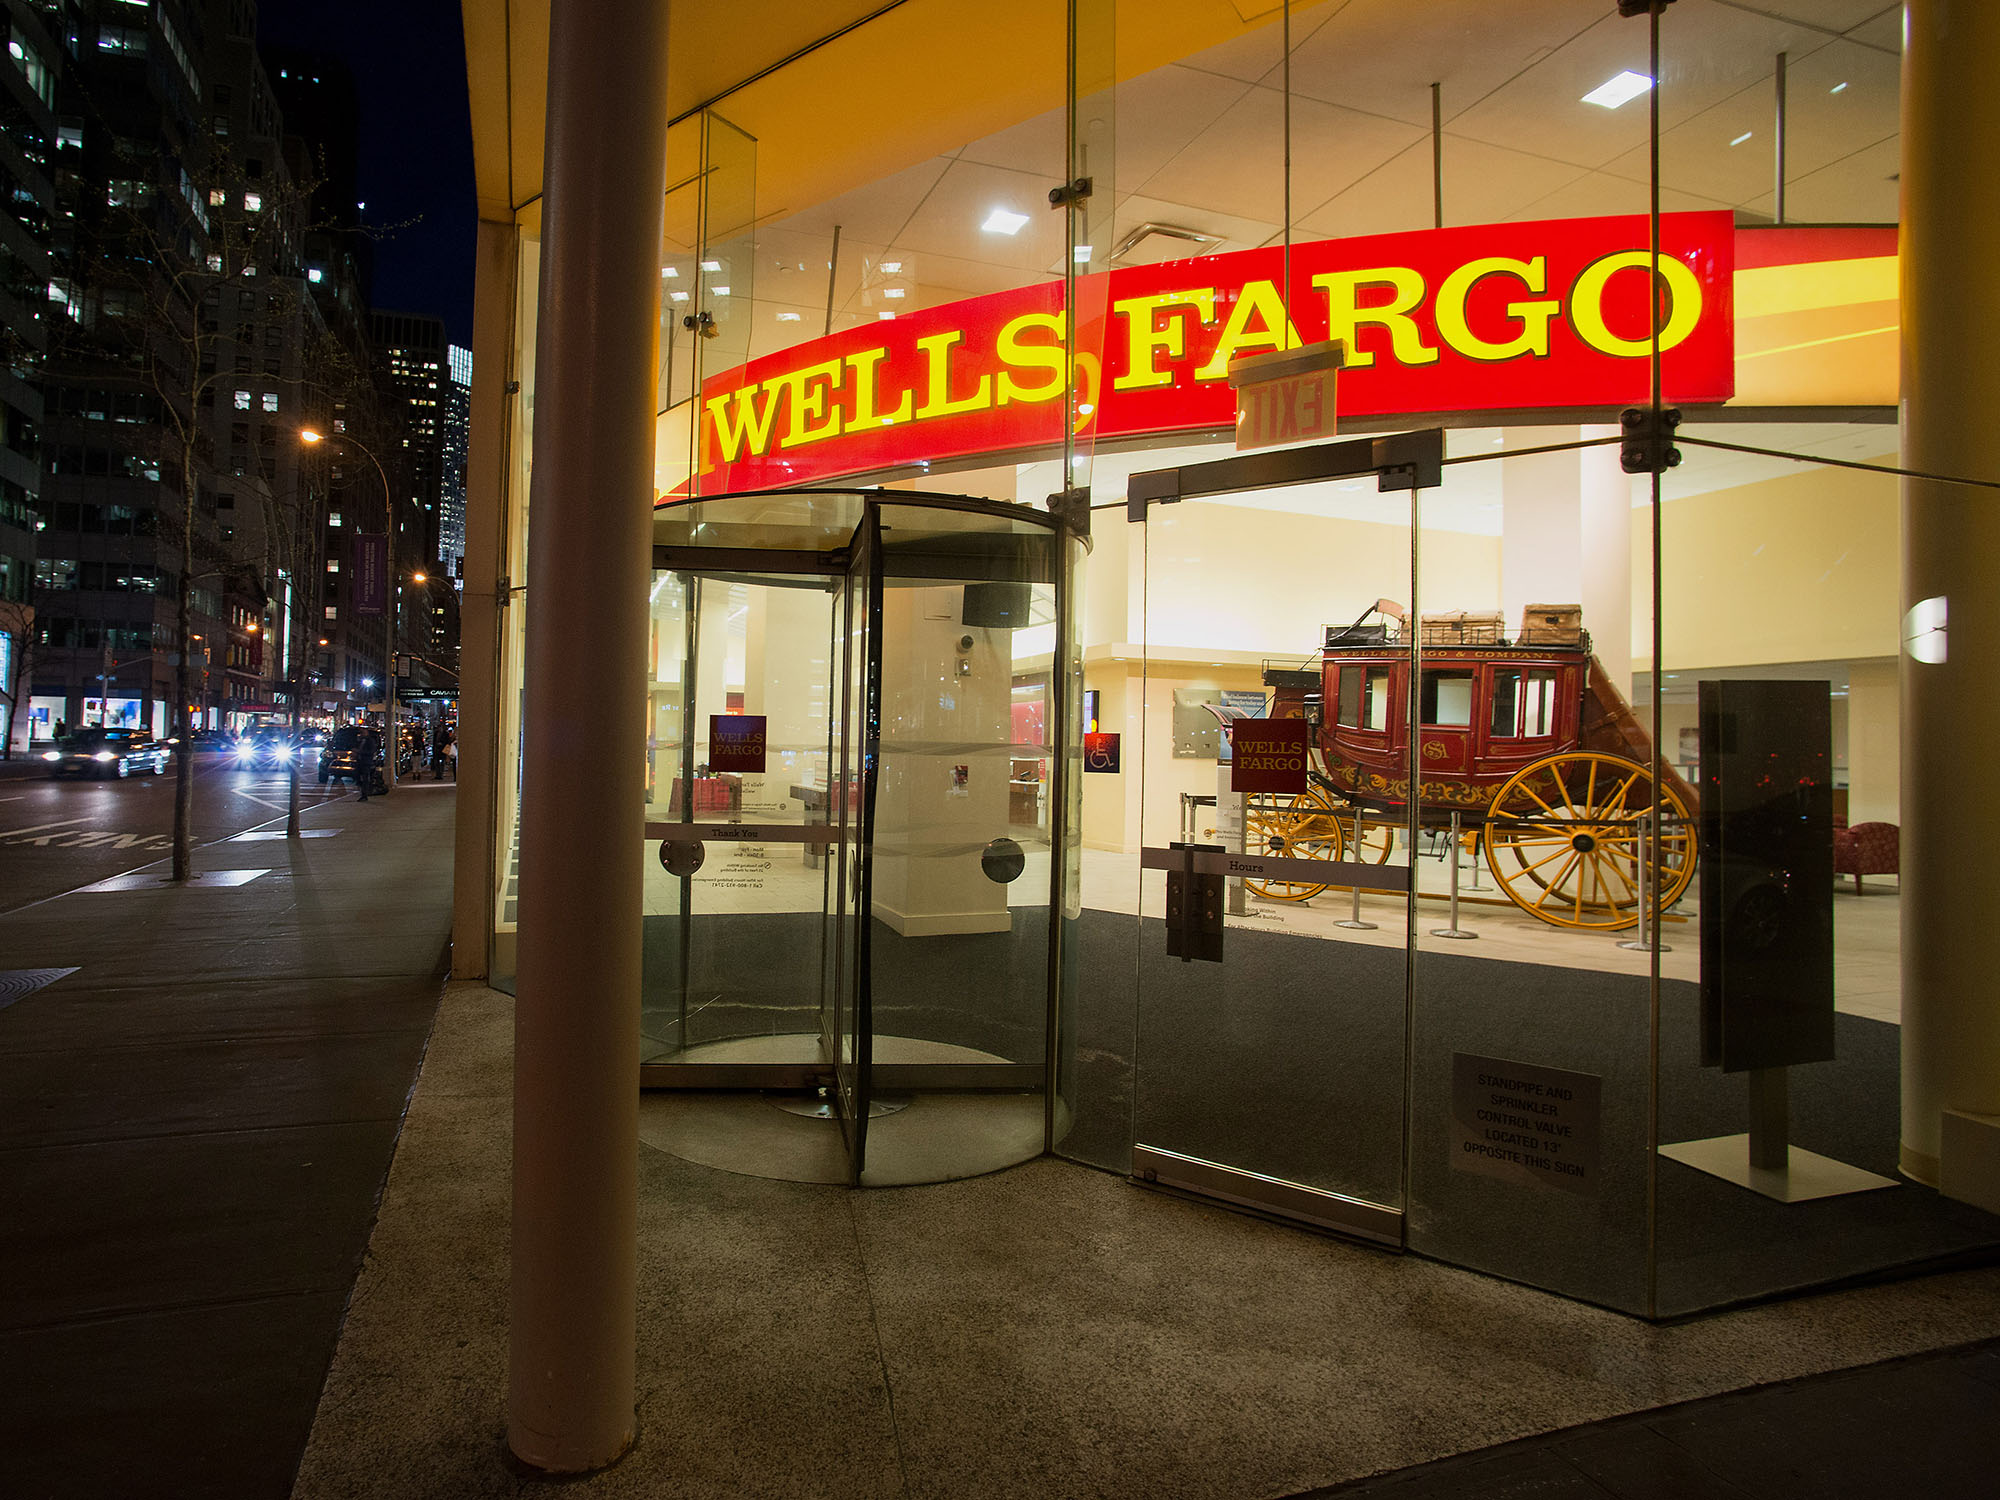 Wells Fargo Wfc Eliminates More Than 700 Jobs In Commercial Banking Bloomberg